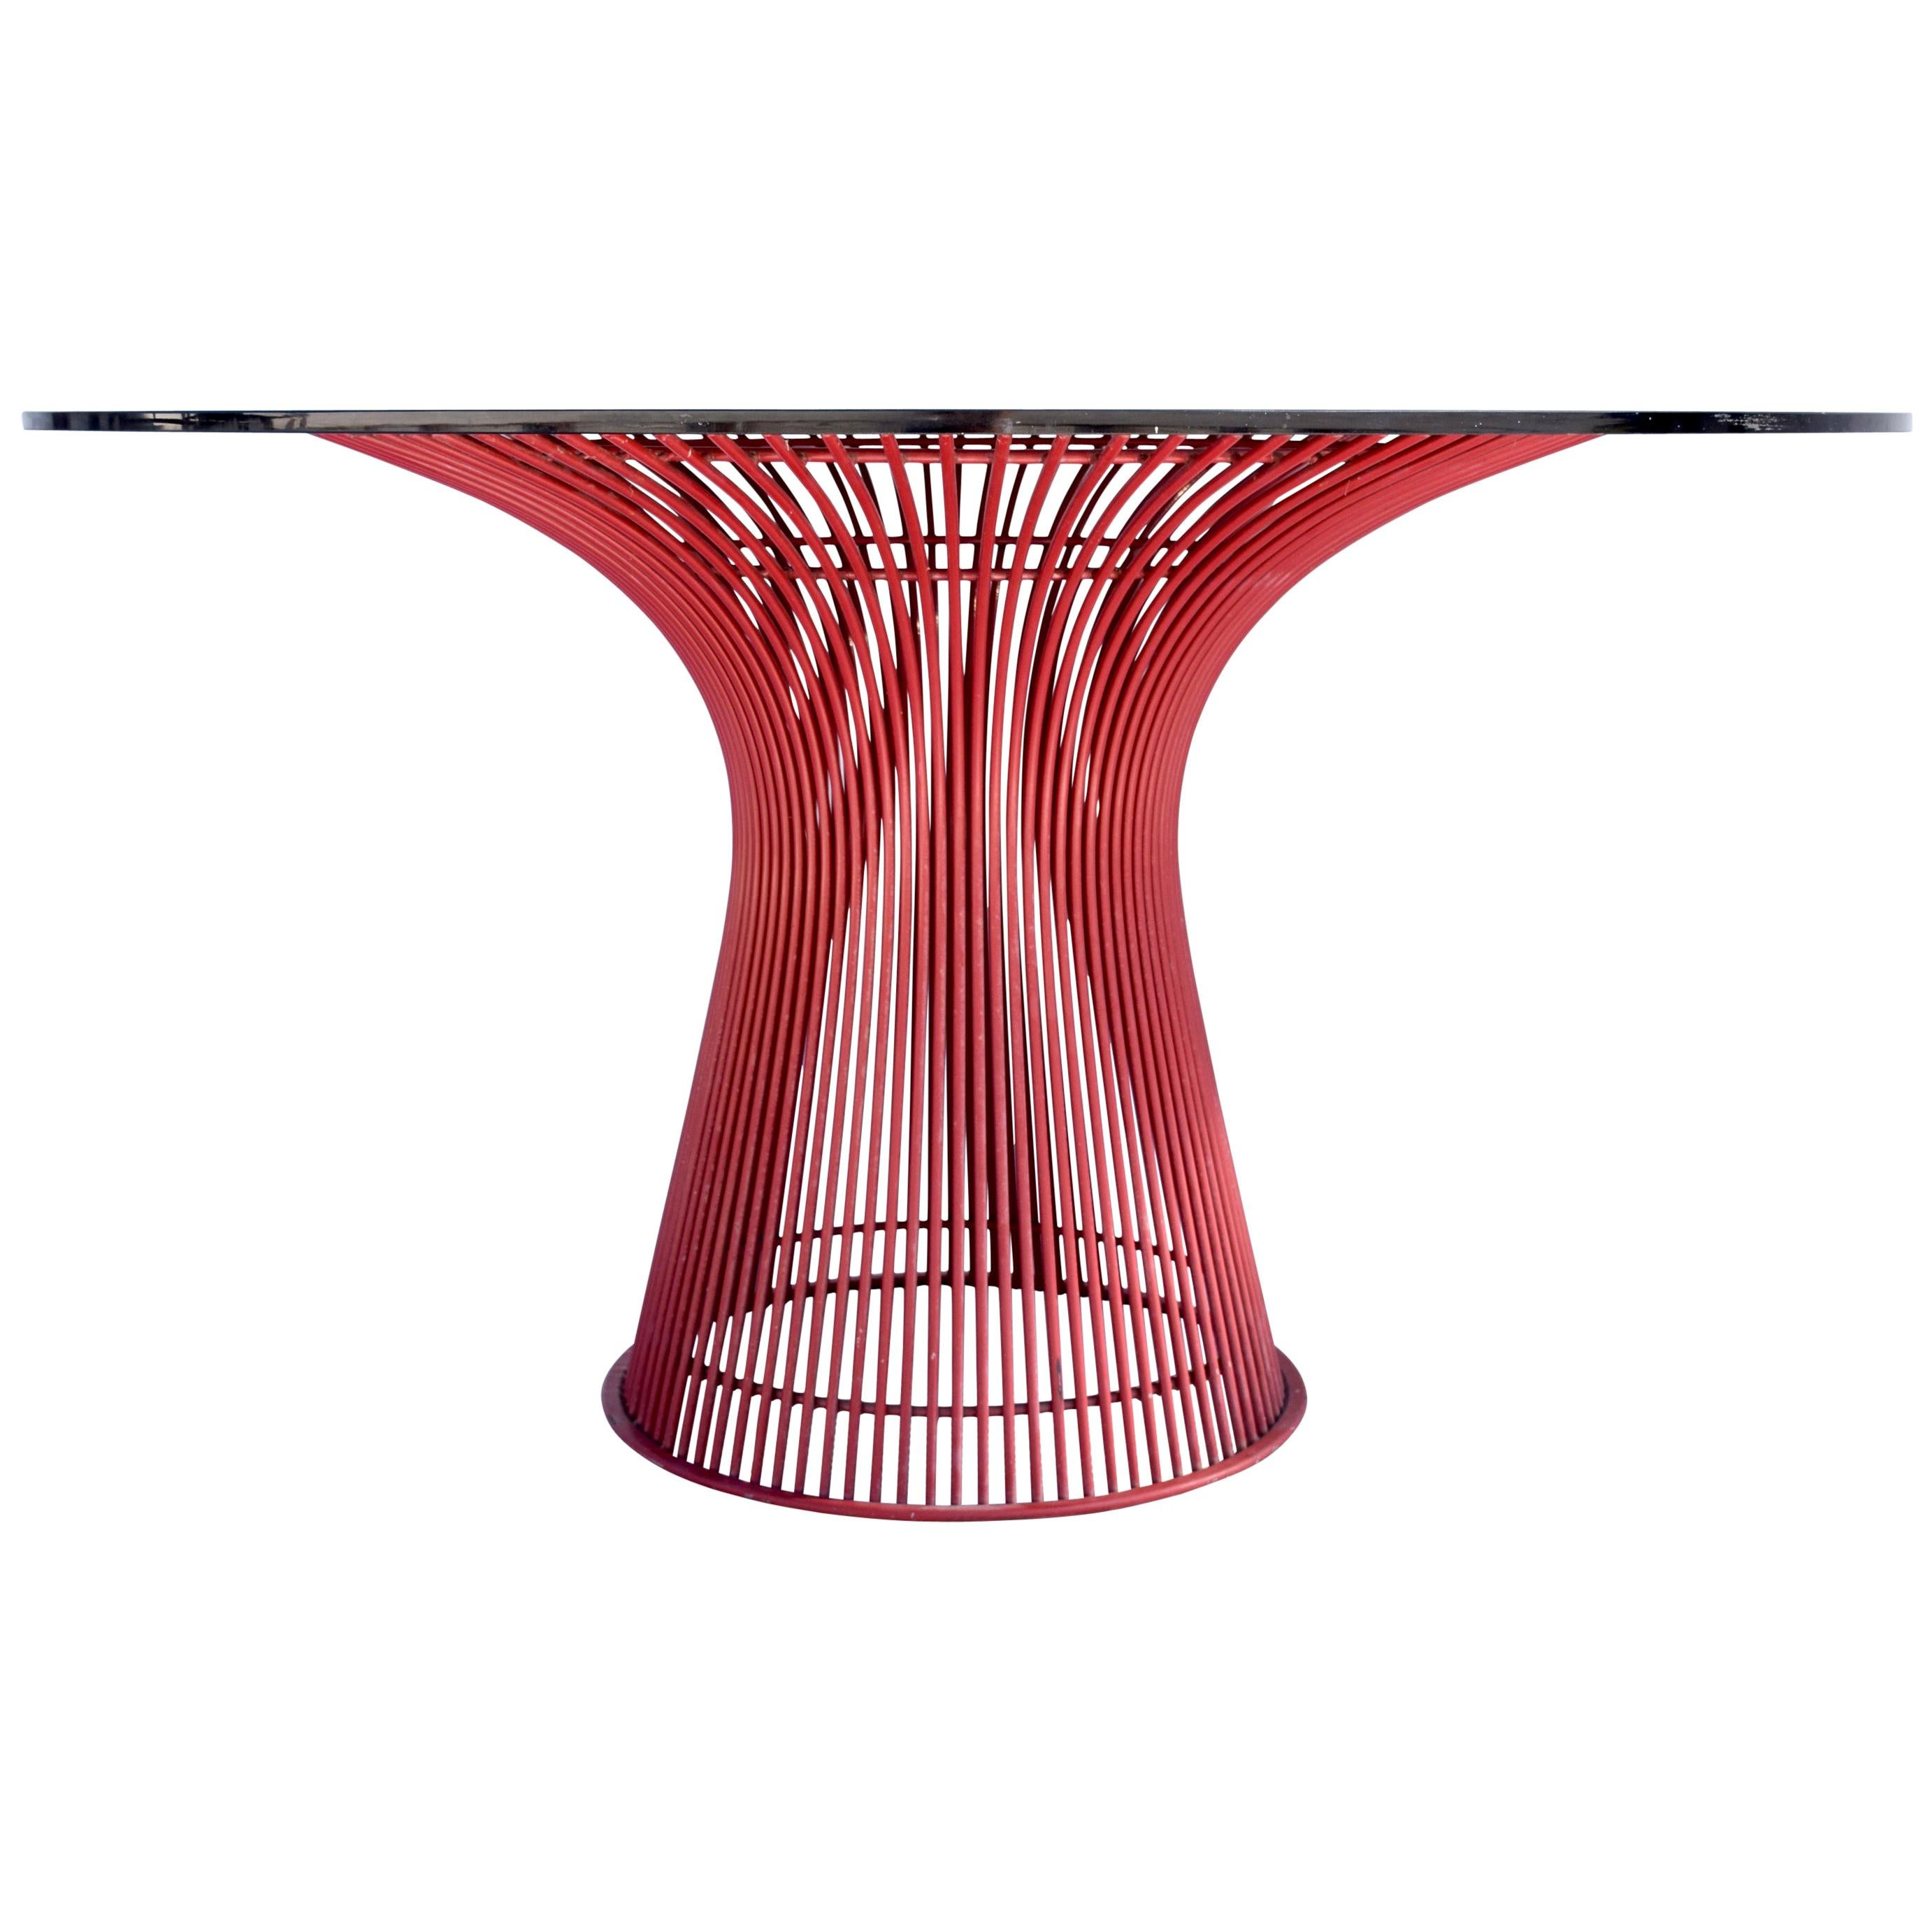 Rare 1970s Warren Platner Wire Dining Table by Knoll